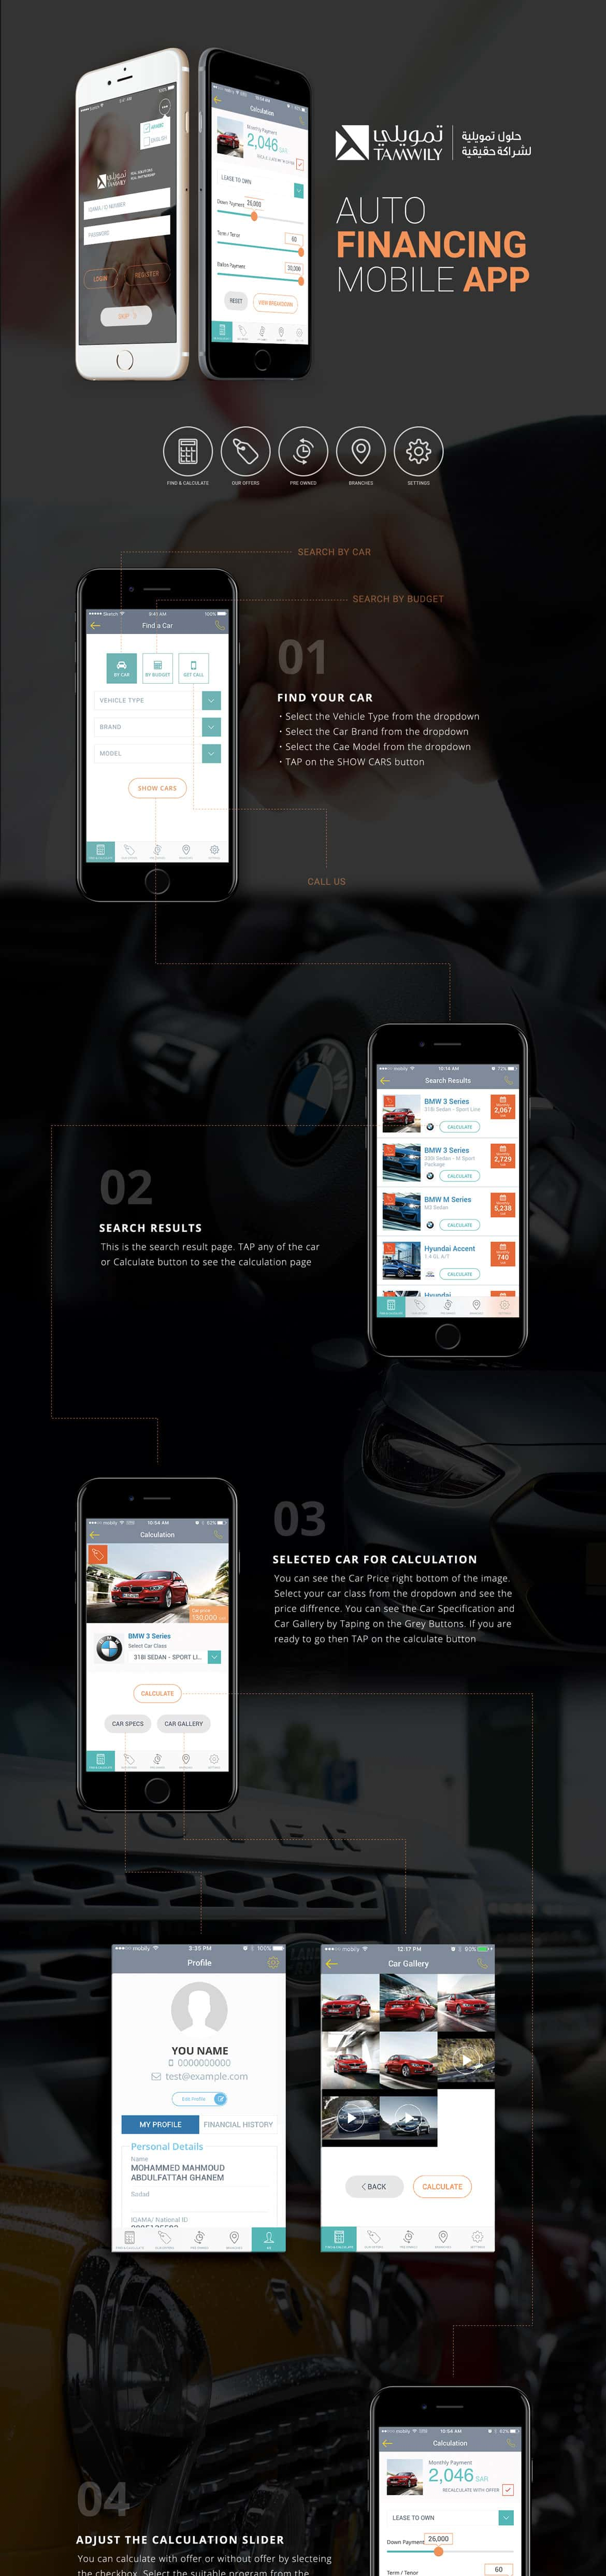 Tamwily-Mobile-App-1